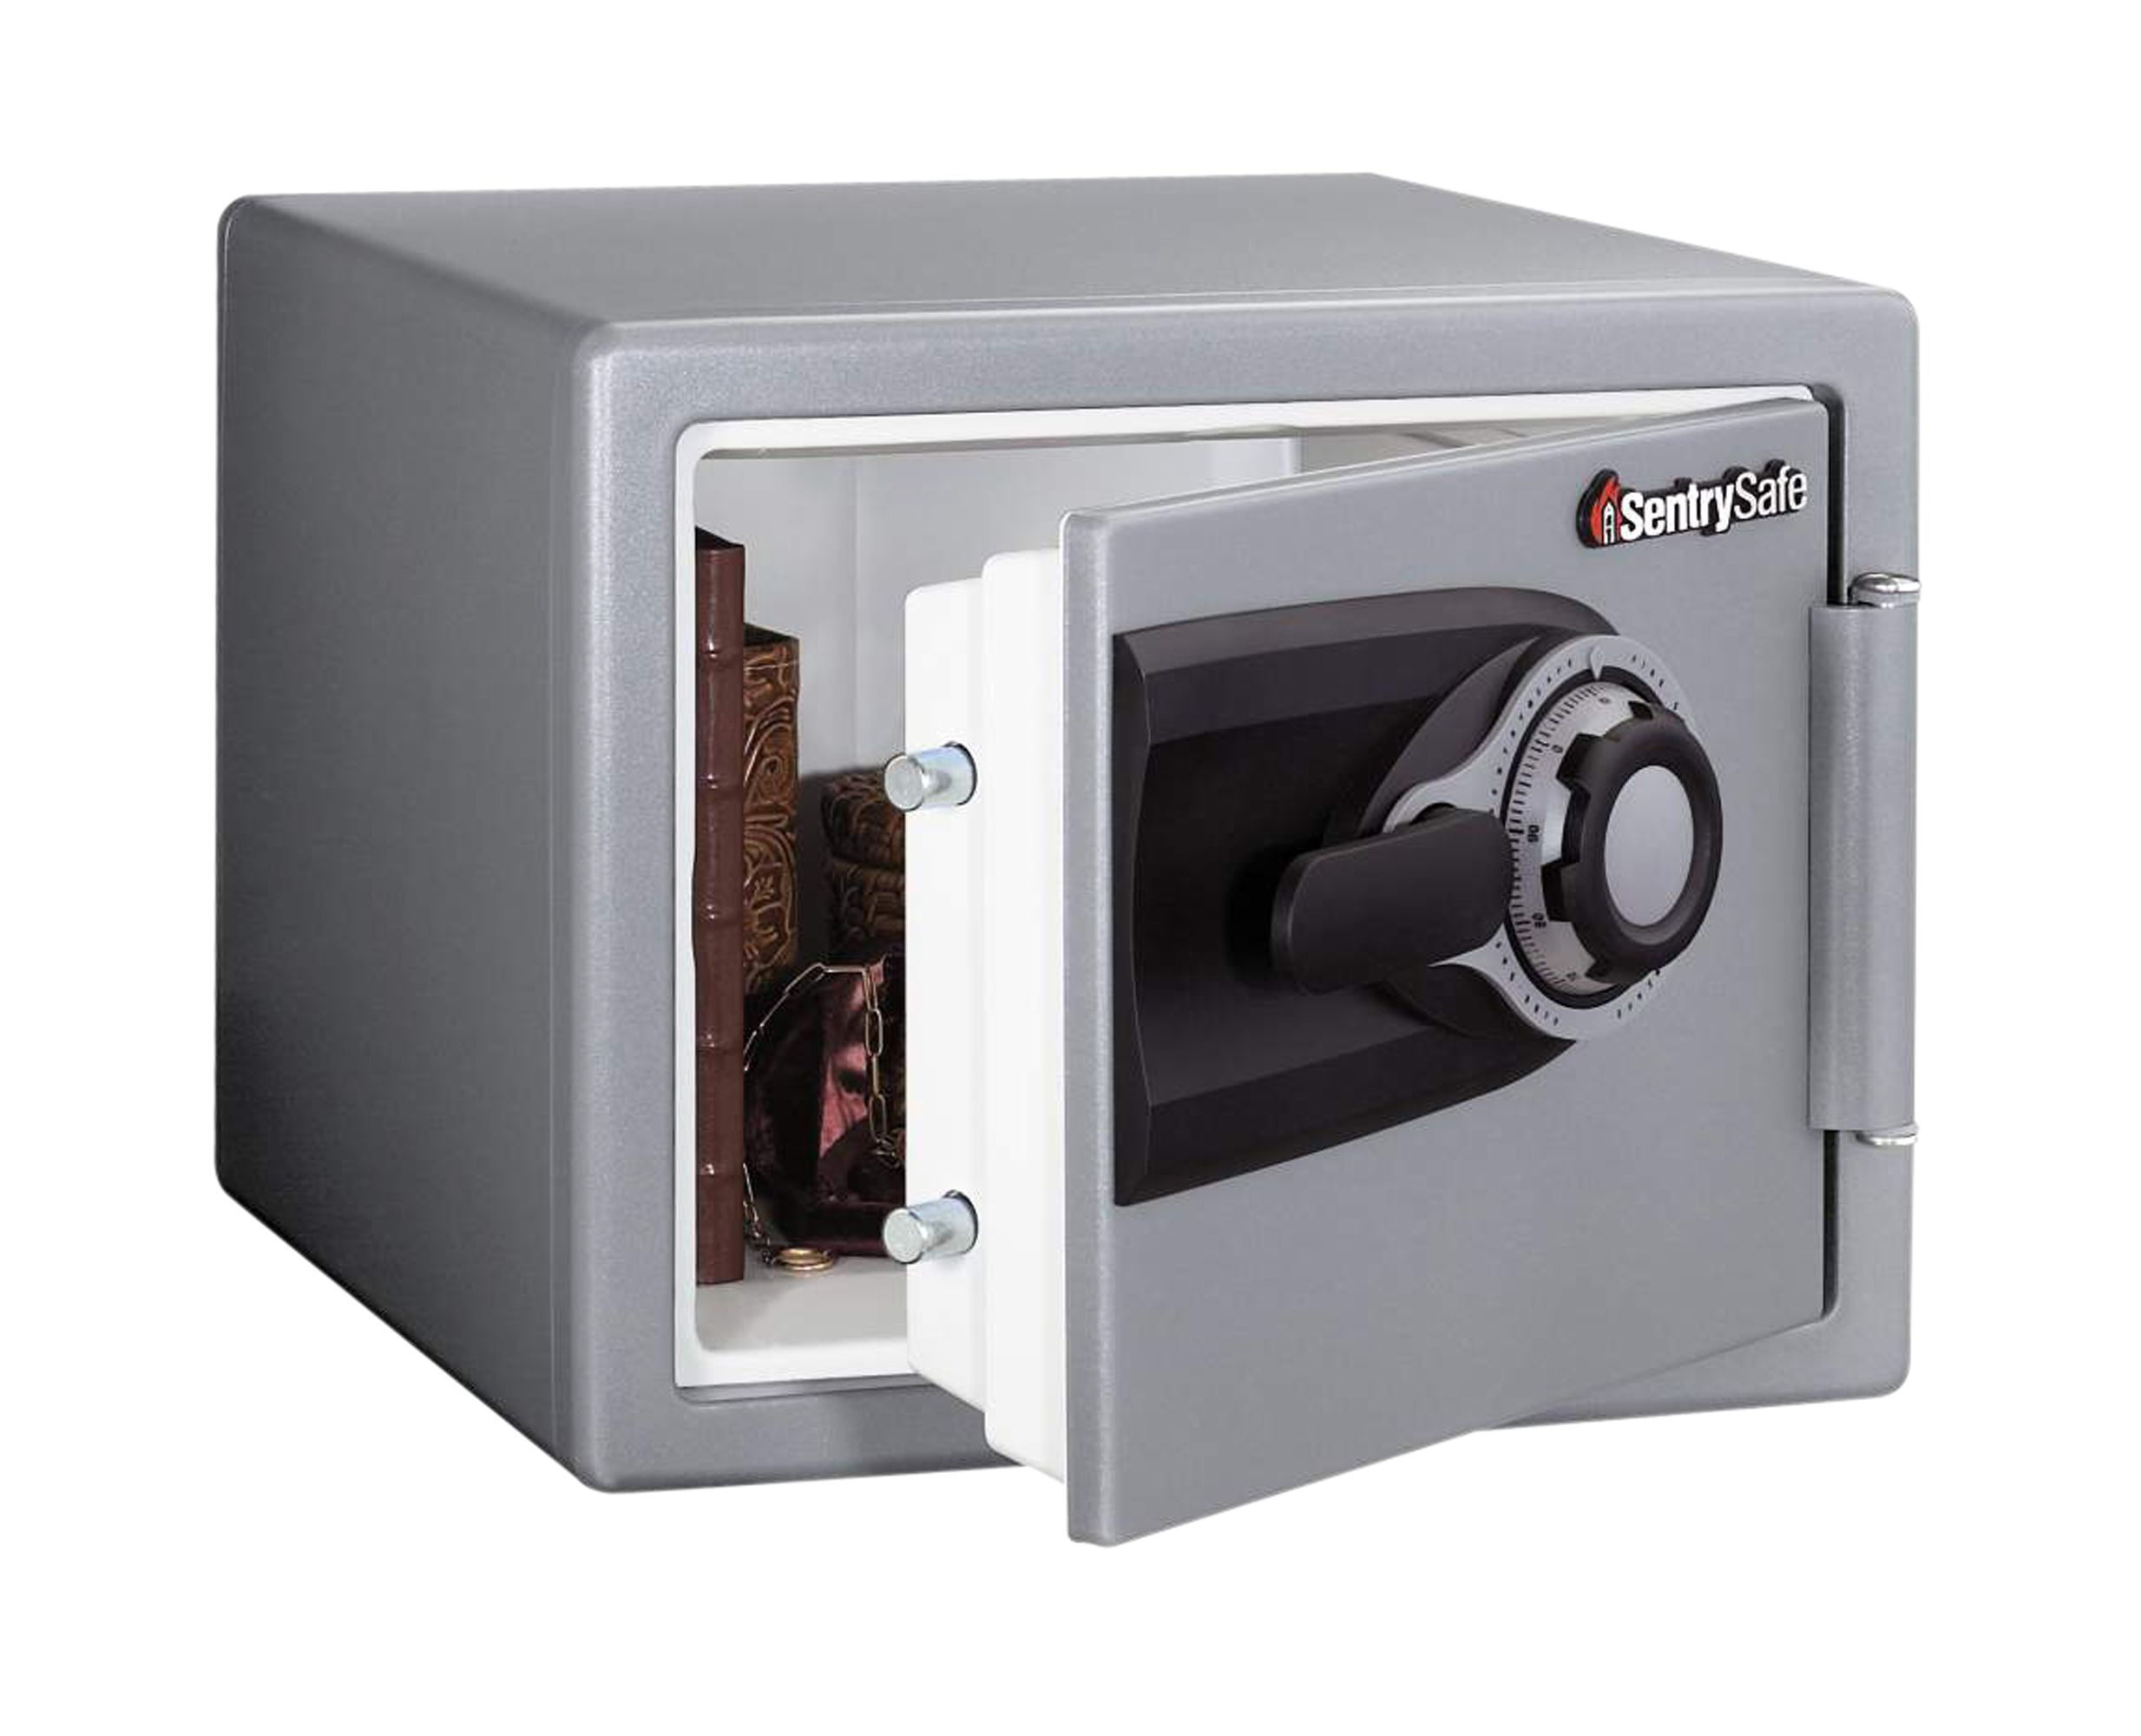 standard safe safes security alarms cctv electrical sentry 22 8l 3 number combination dial fire safe combination lock